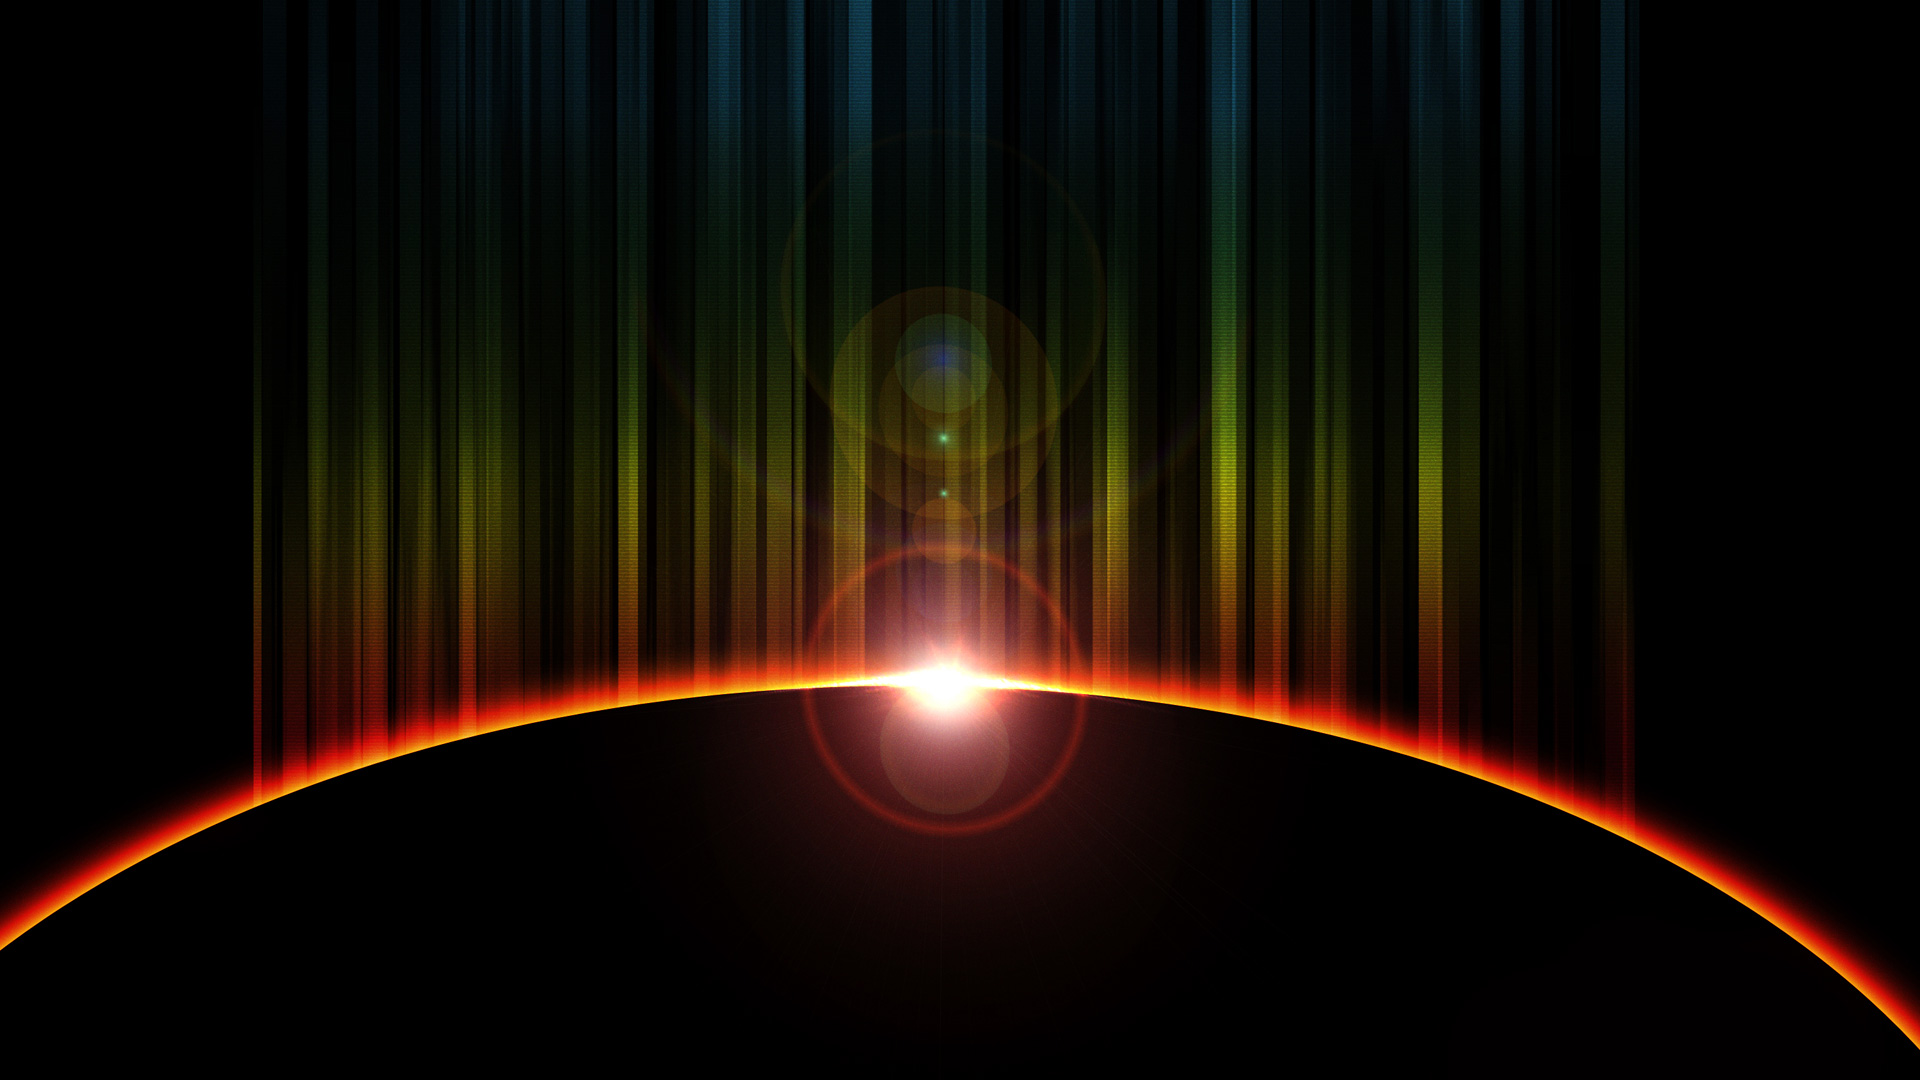 Solar Eclipse Wallpapers Archives - HDWallSource.com ...